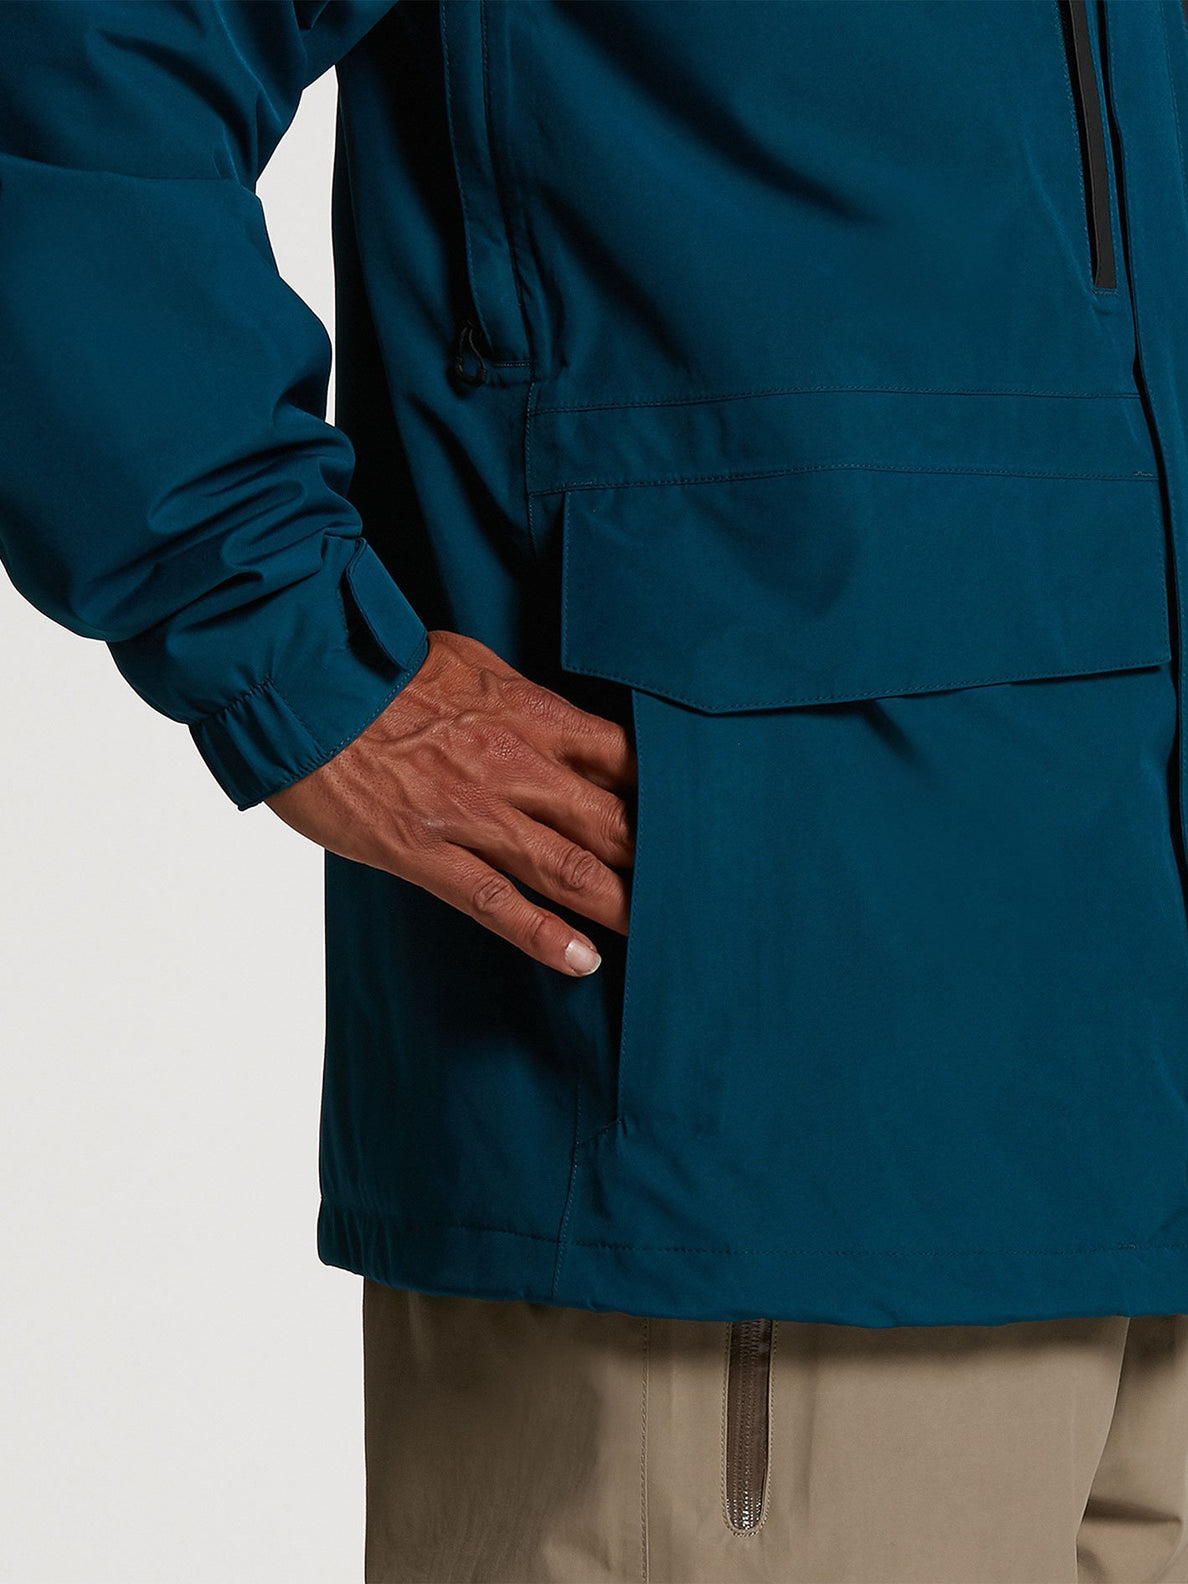 TEN GORE-TEX JACKET (G0652116_RSG) [04]